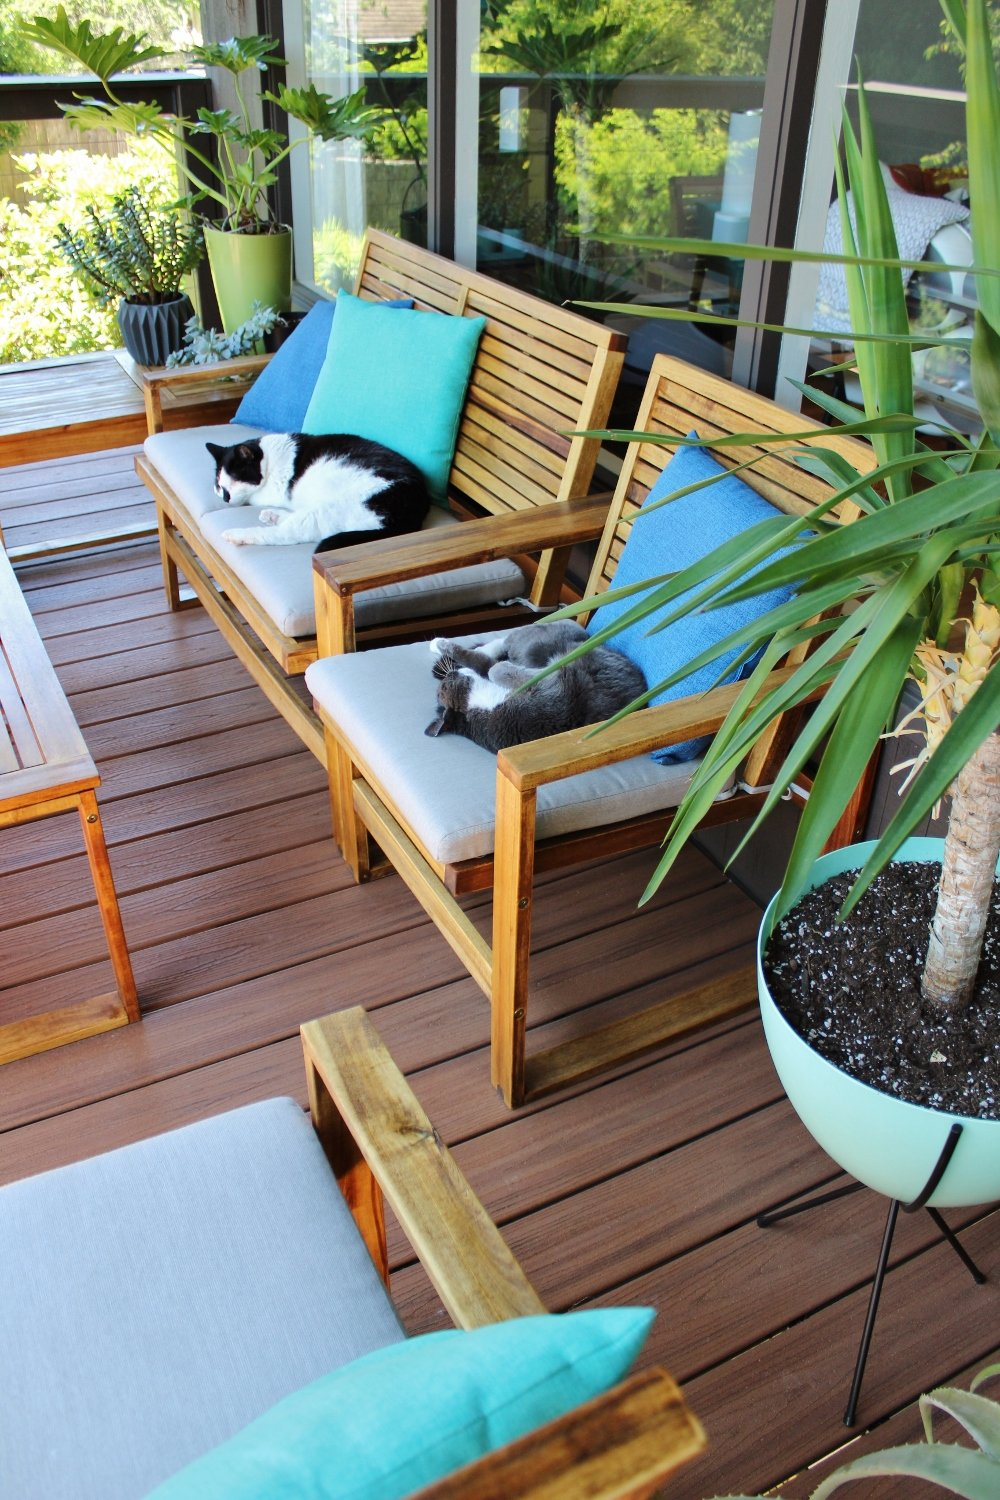 Outdoor furniture makeover with new cushions and teak oil finish